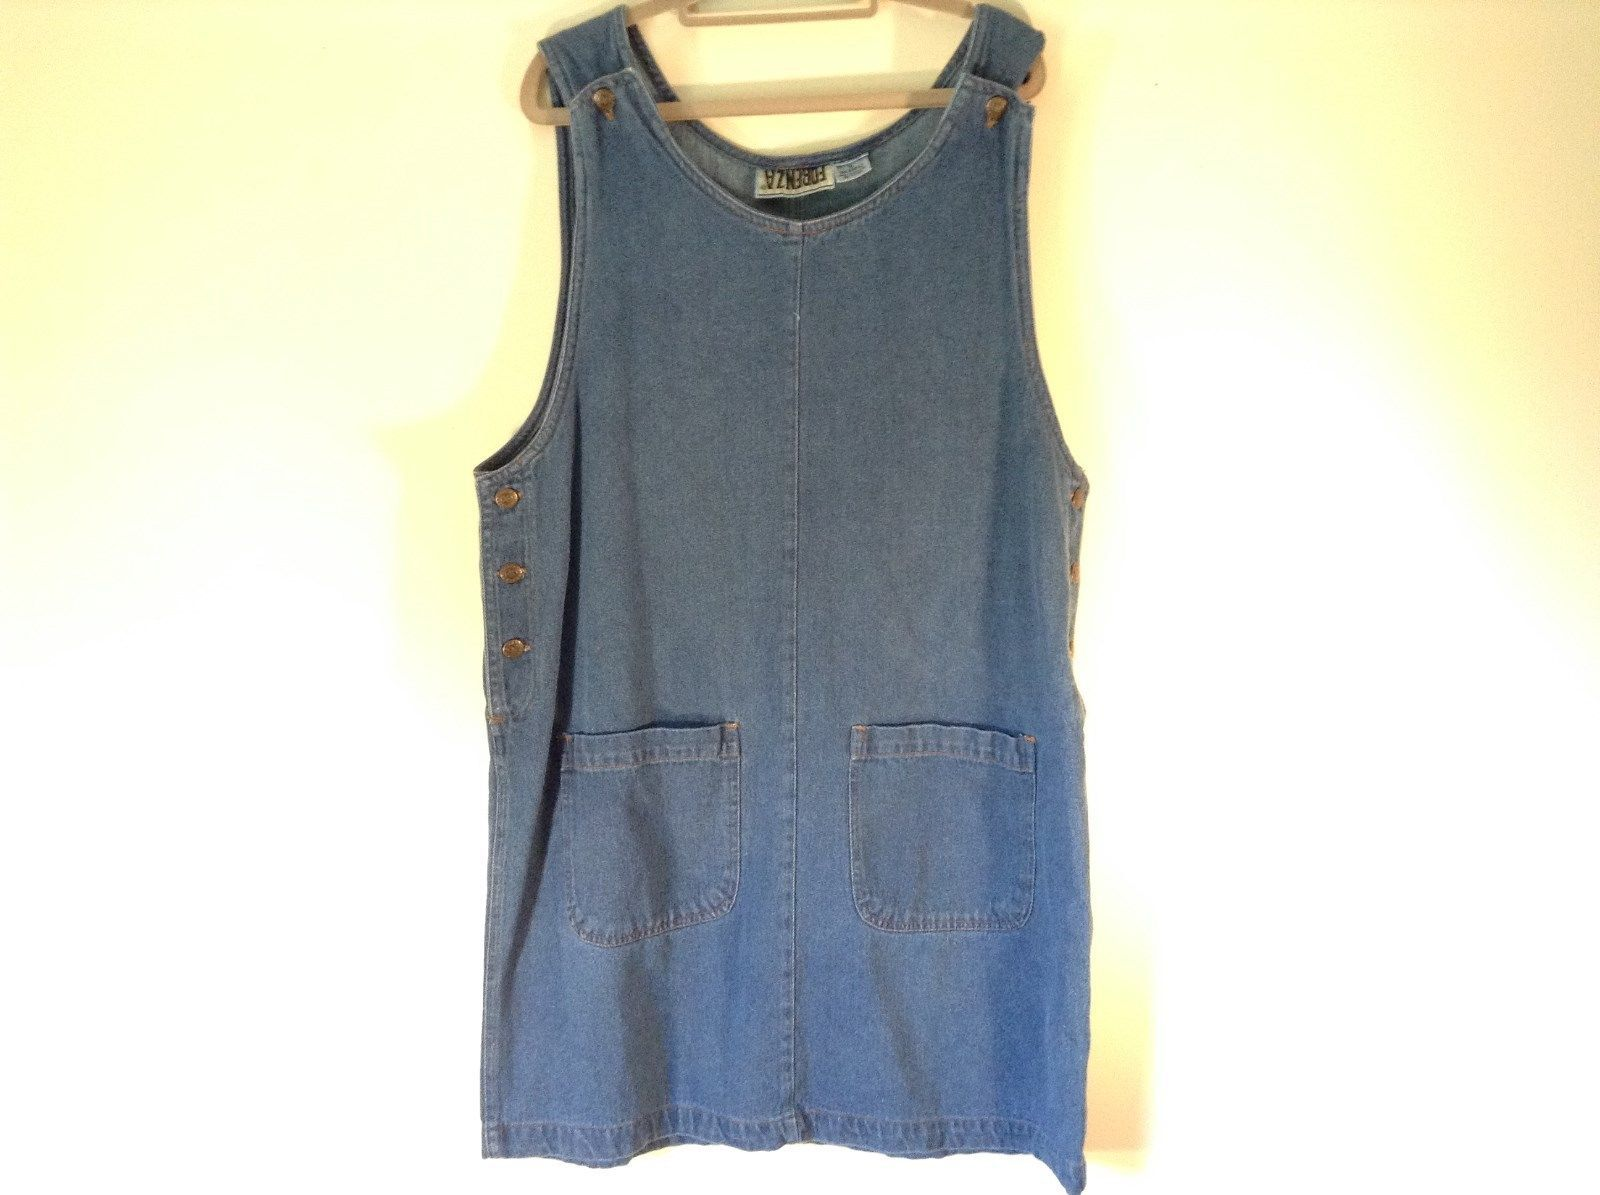 Forenza Denim Sleeveless Dress 3 Button Side Closure 2 Front Pockets Size 16